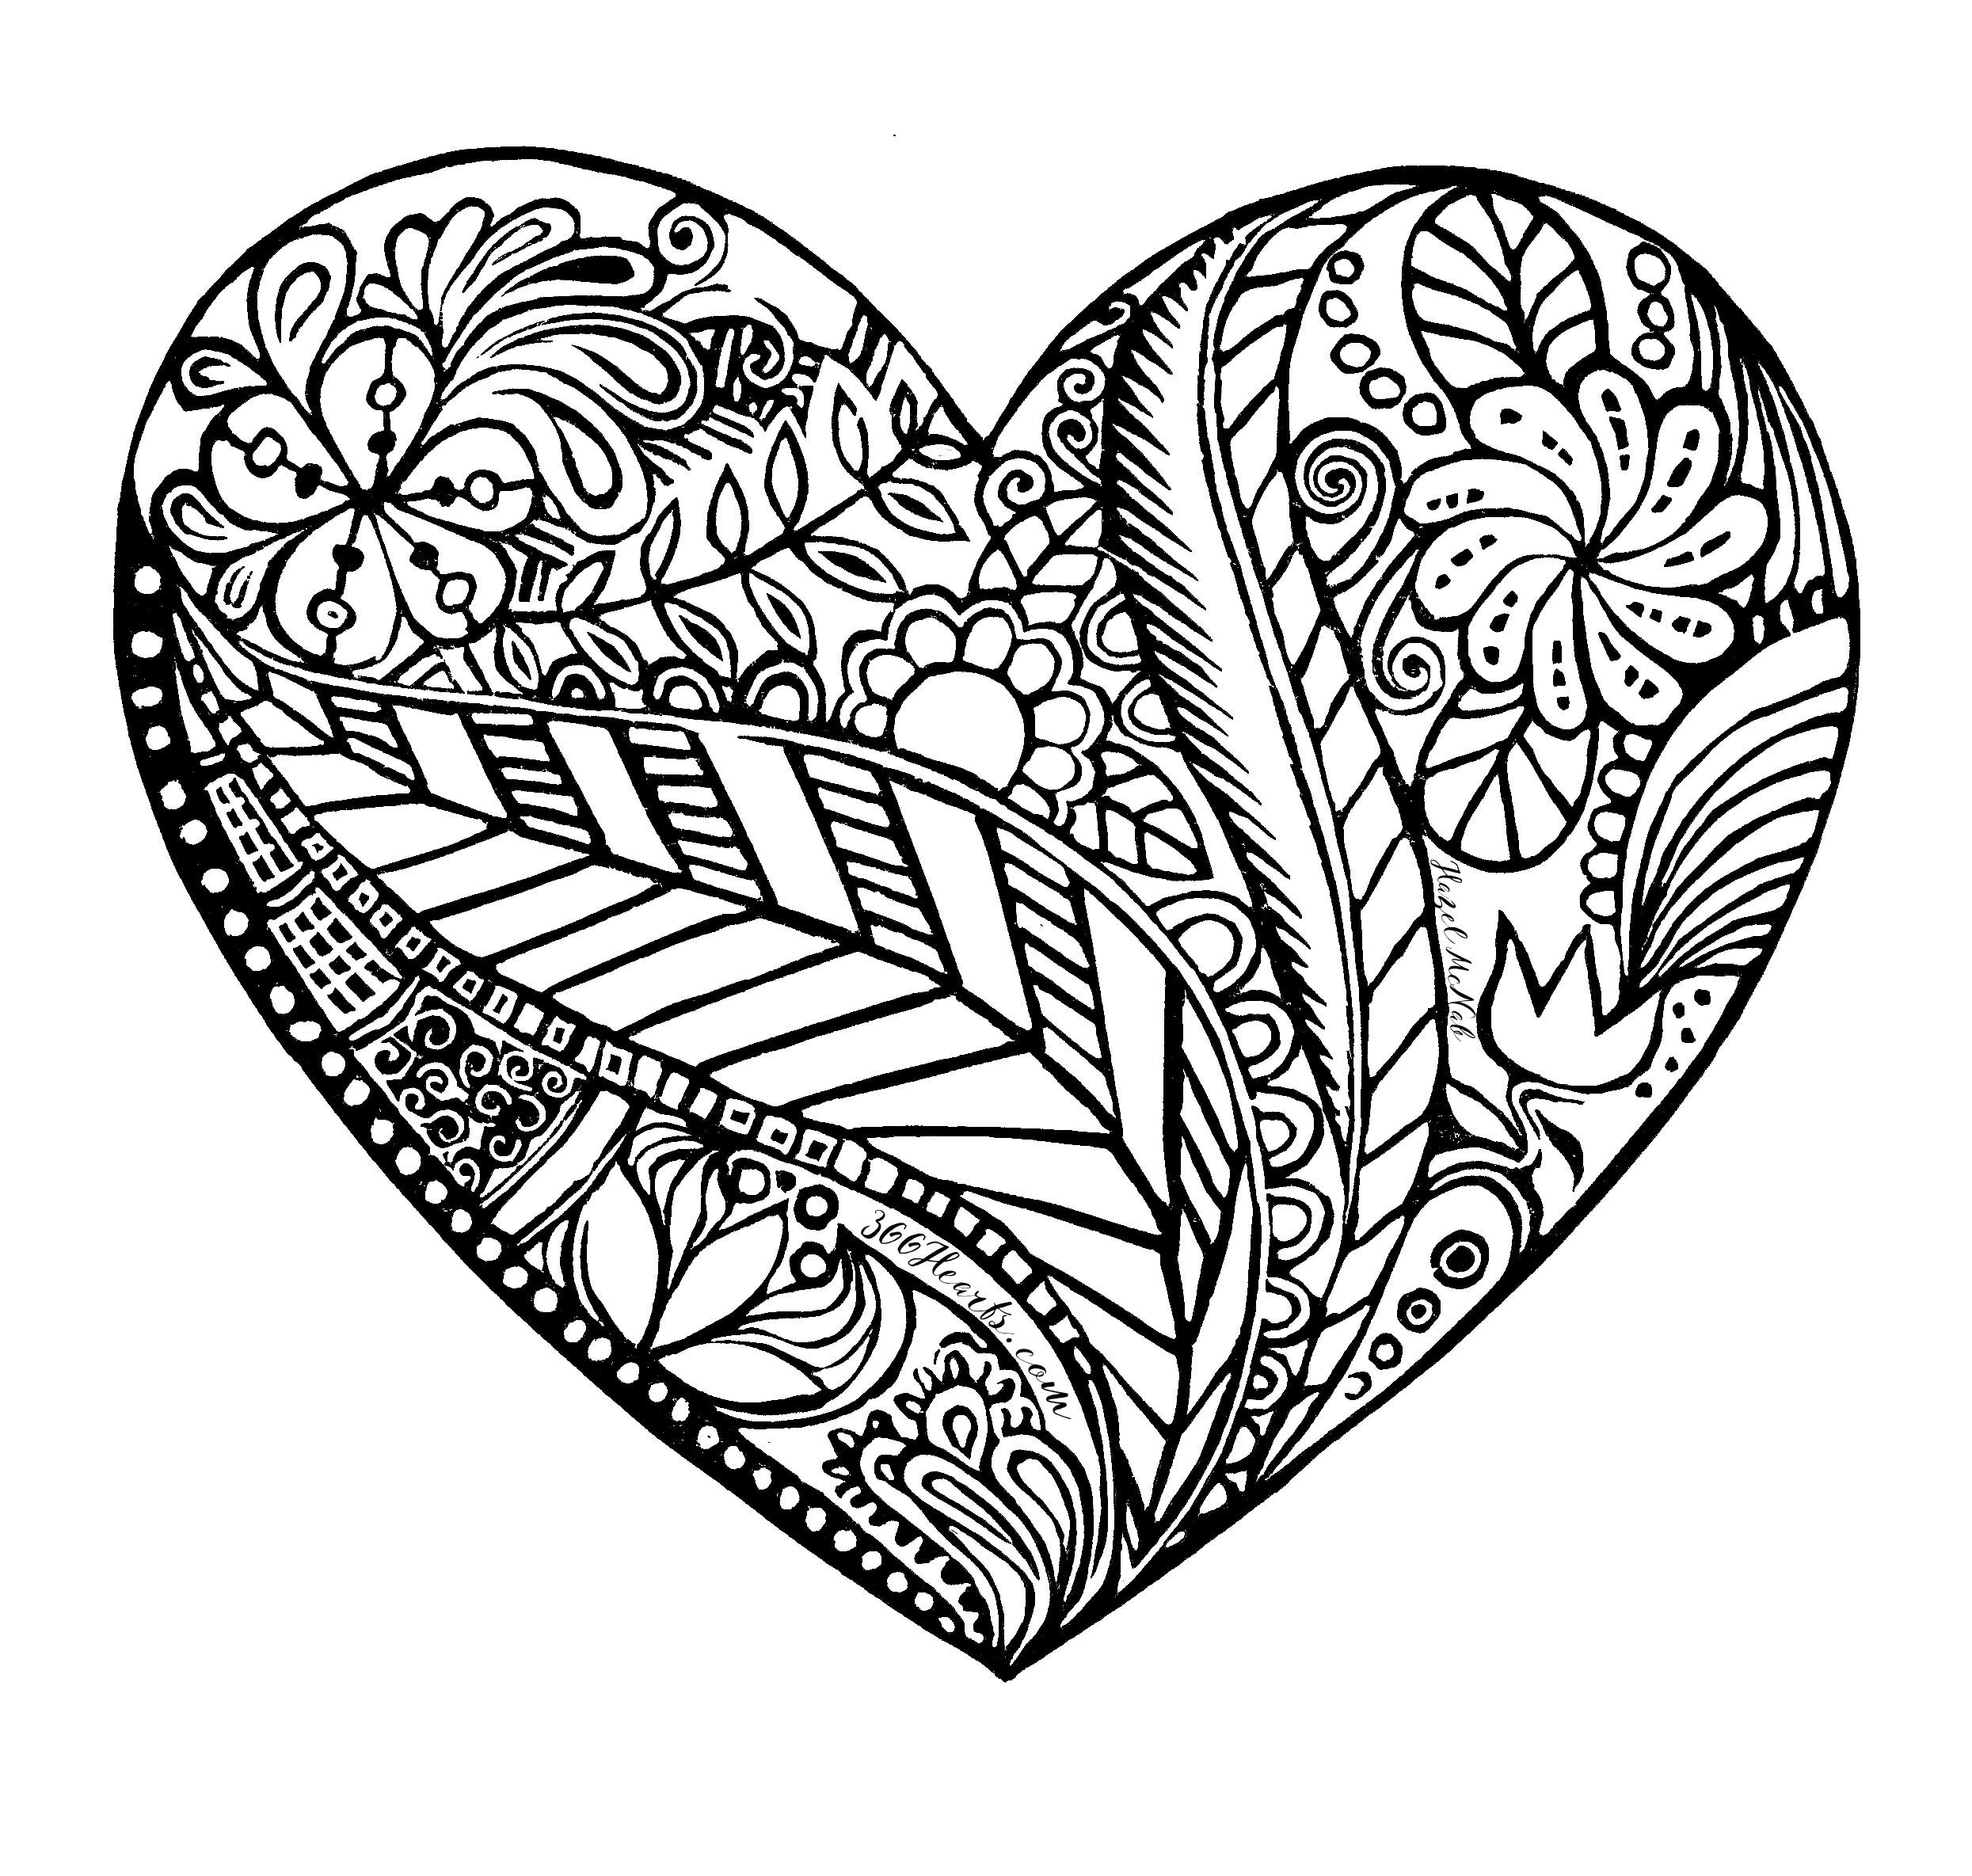 coloring pictures of hearts valentine heart coloring pages best coloring pages for kids hearts of pictures coloring